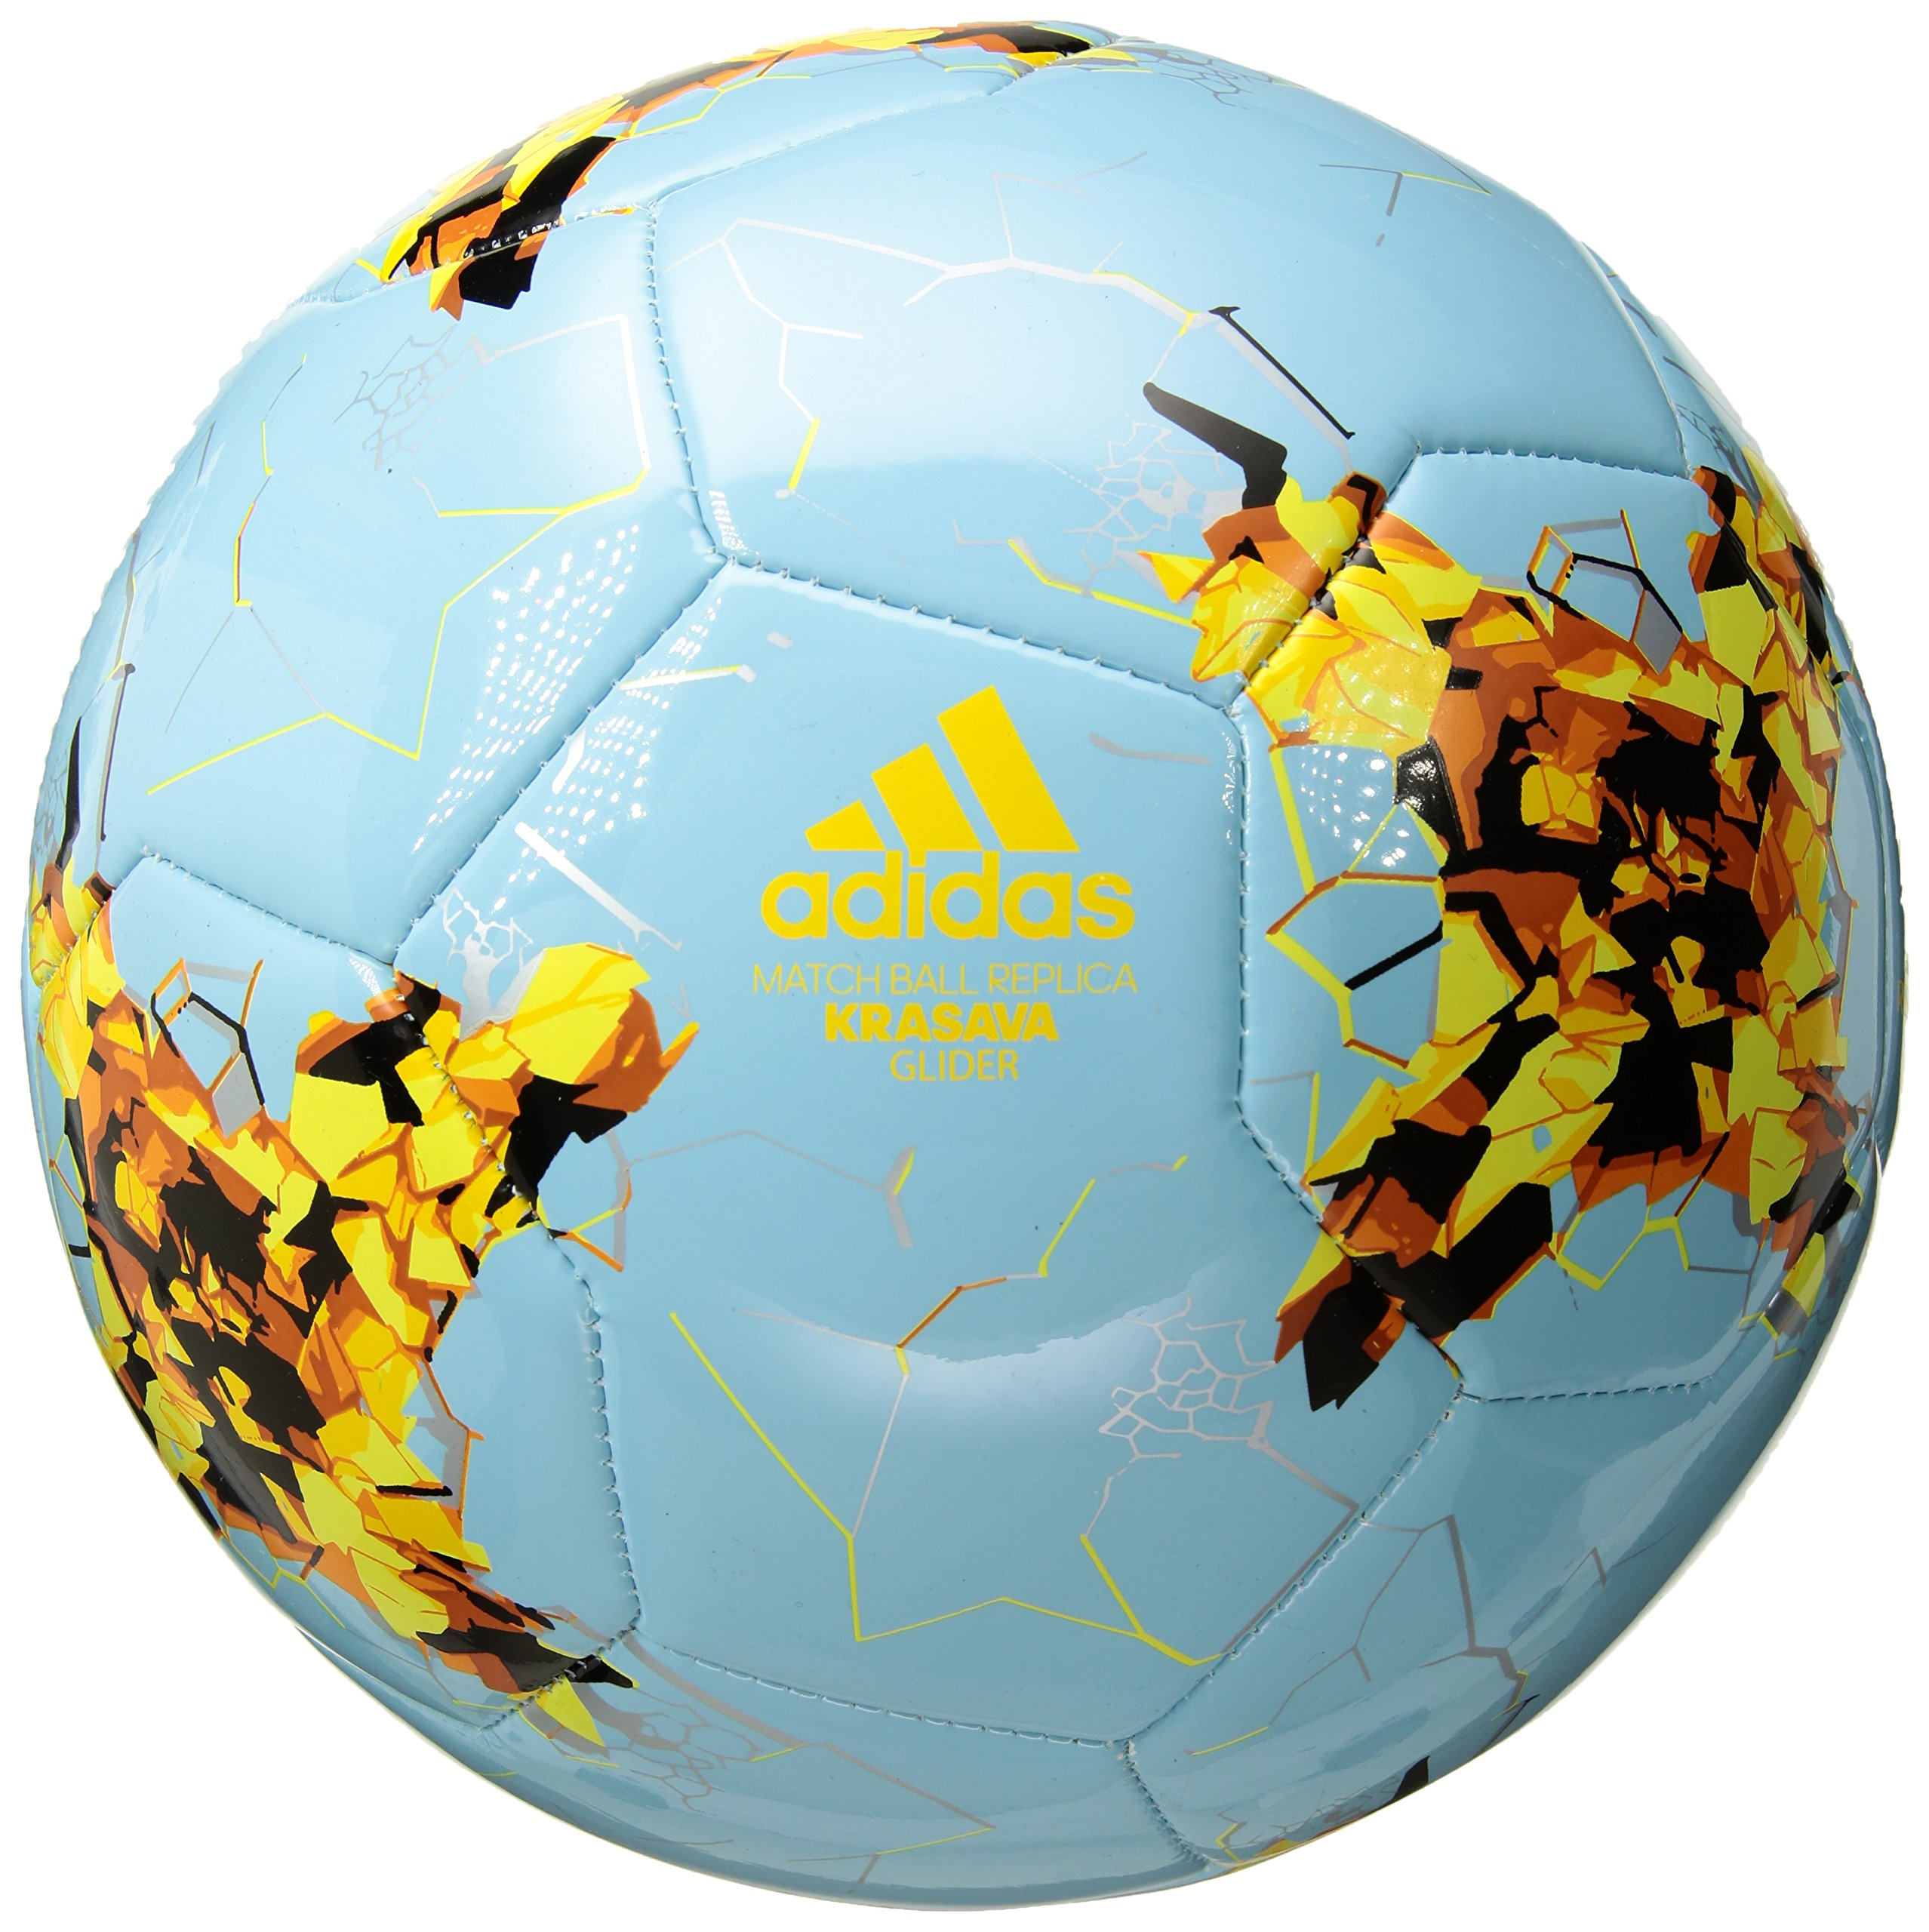 adidas Performance Confederations Cup Glider Soccer Ball, Ice Blue/Shock Yellow/Tactile Orange, Size 3